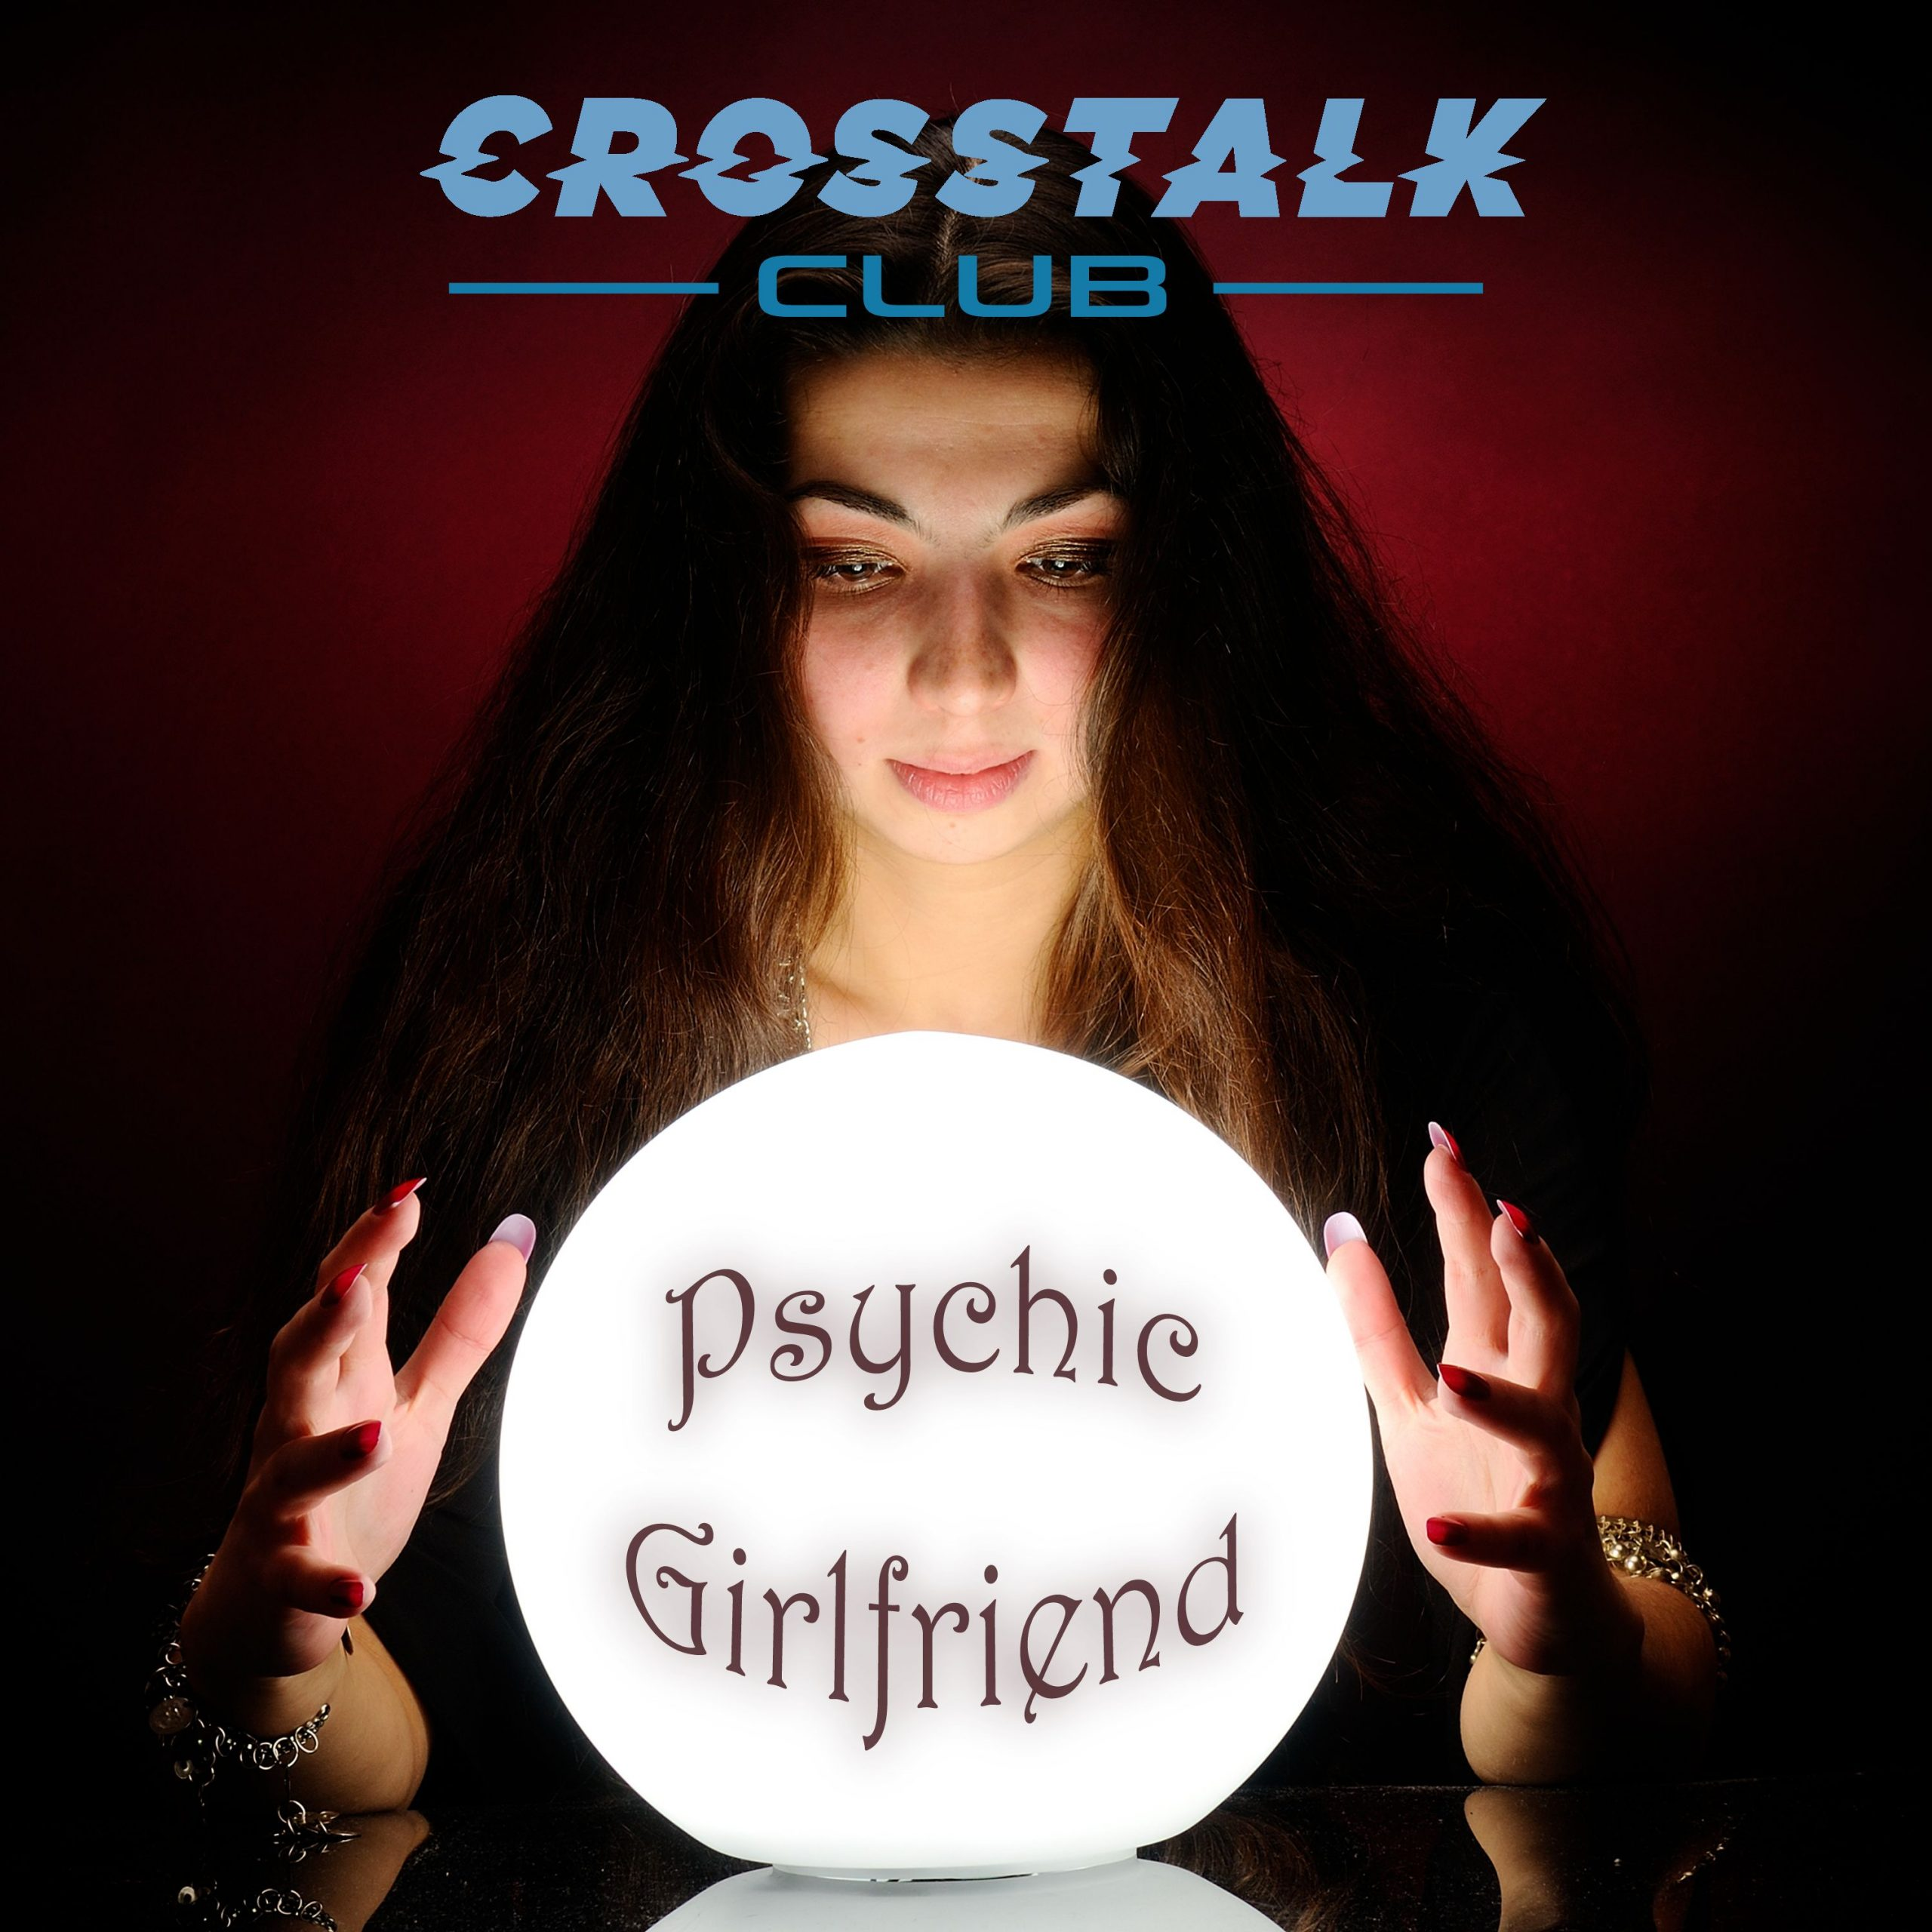 """Read more about the article The Daily Feature: What Makes Crosstalk Club's """"Psychic Girlfriend"""" So Enjoyable?"""